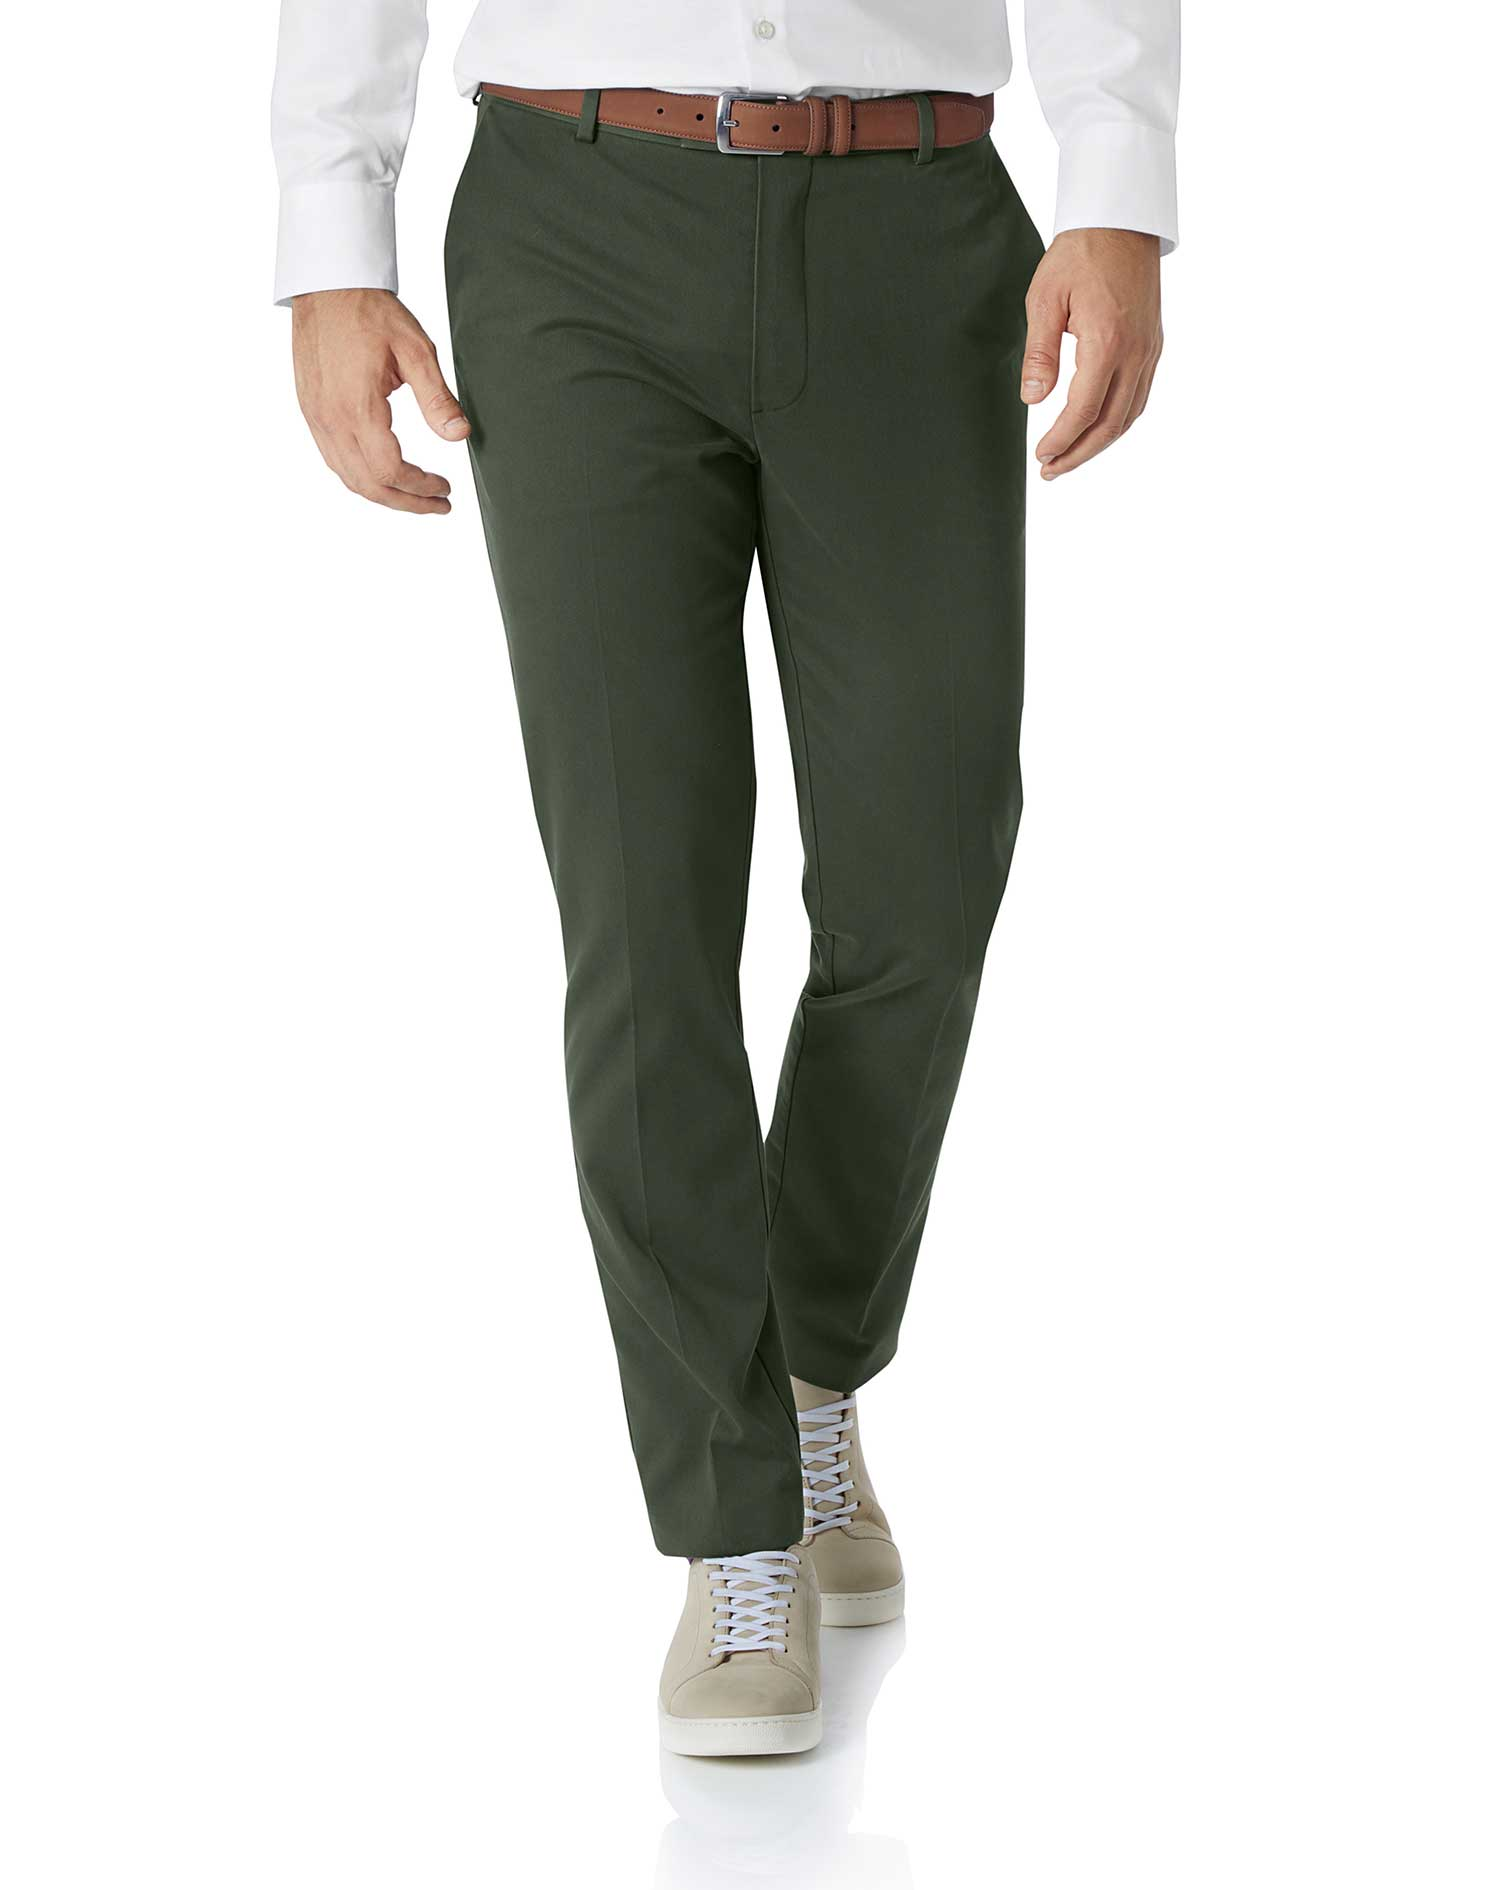 Dark Green Extra Slim Fit Flat Front Non-Iron Cotton Chino Trousers Size W34 L32 by Charles Tyrwhitt